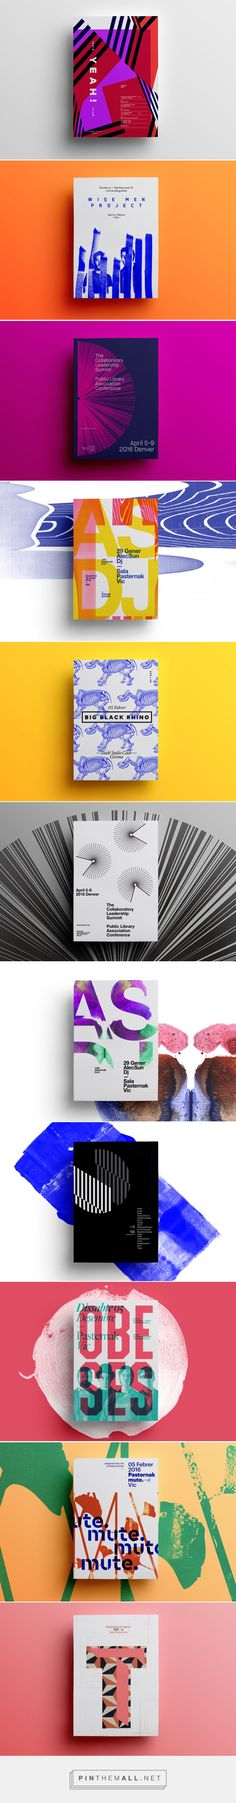 Quim Marin_#graphicdesigntrends #graphicdesign #design #trends #trendarchive #february